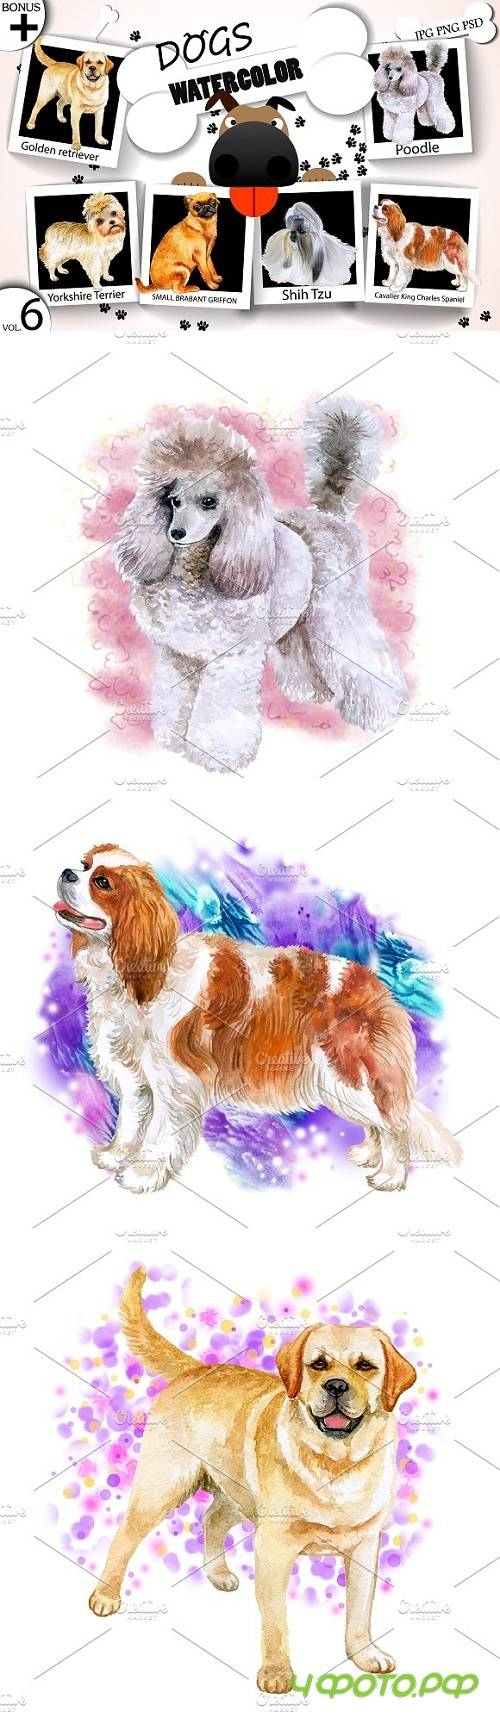 Watercolor Dogs - Collection 6 of 12 - 1717415